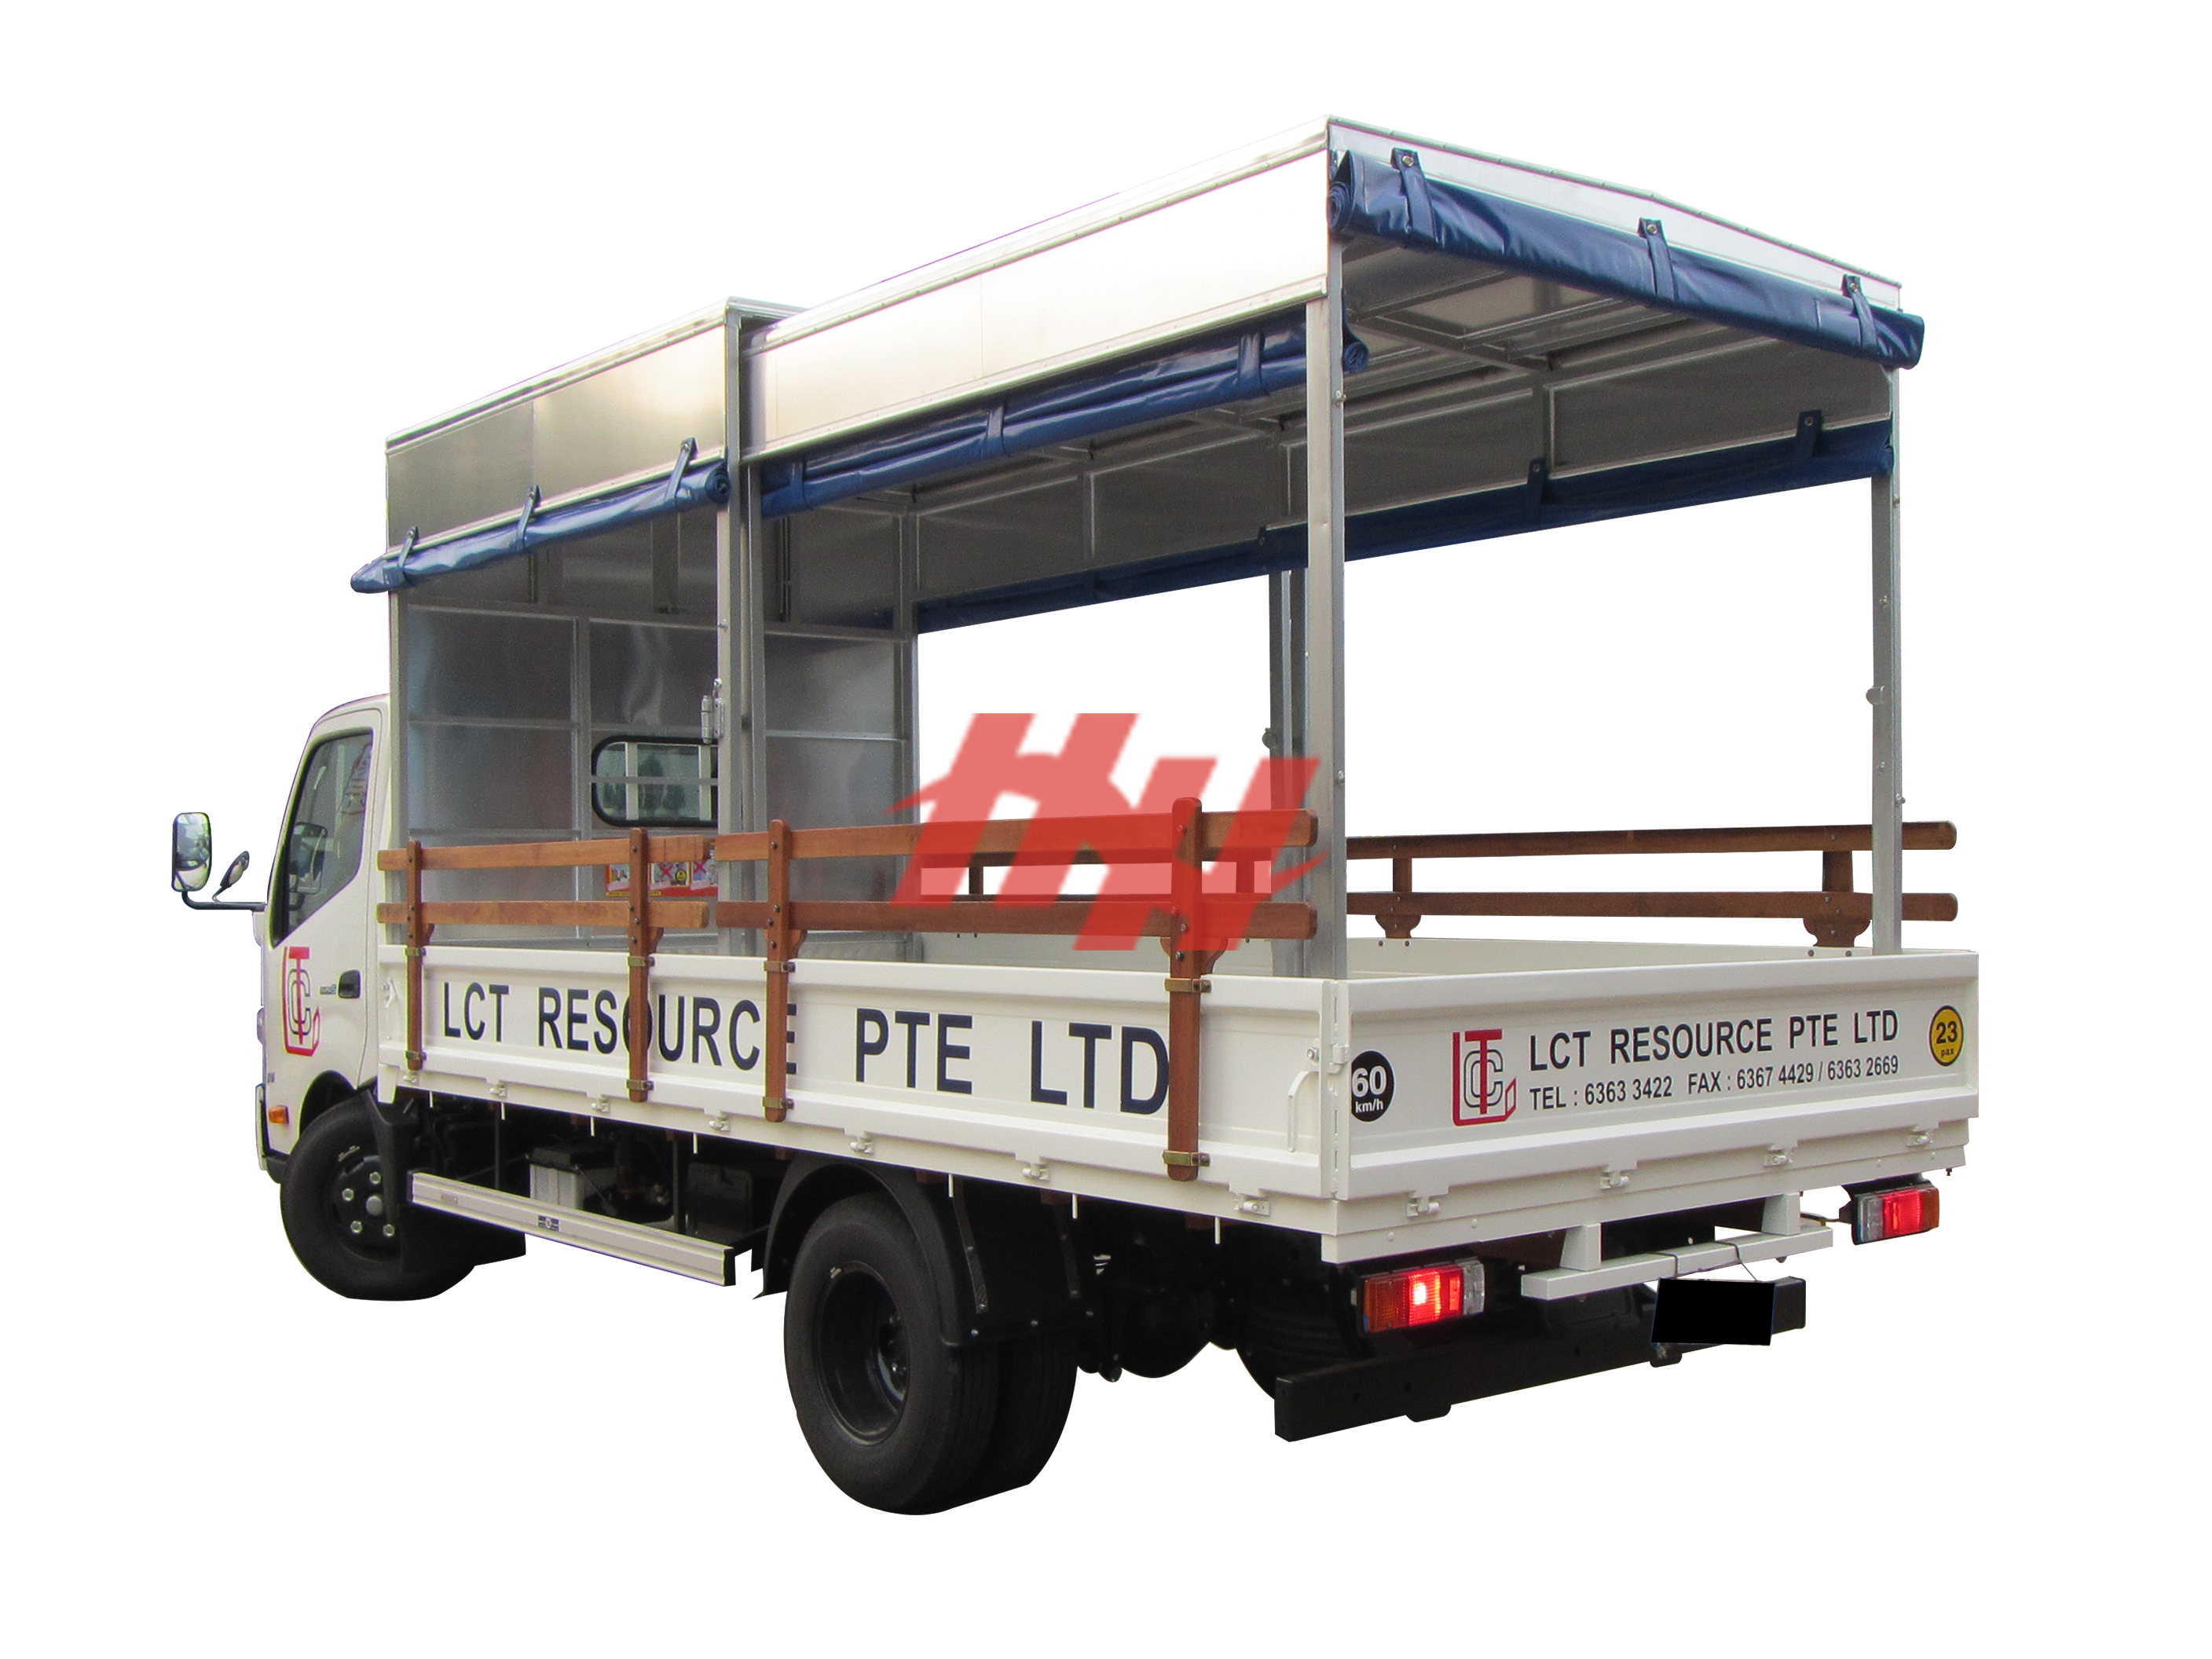 Steel body  high roof retractable canopy with roll down canvas and side pannel edit